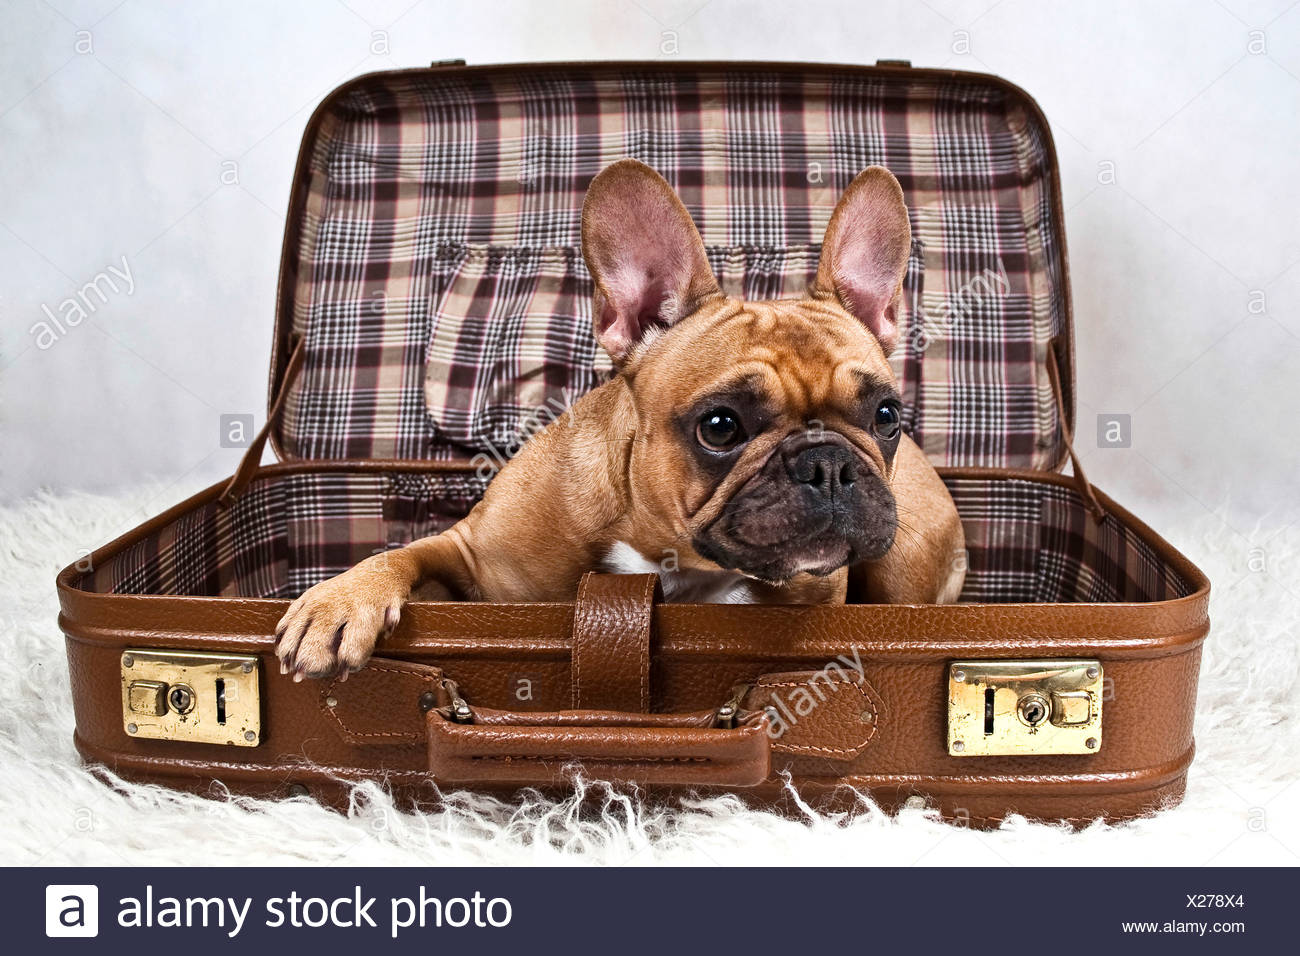 French bulldog lying in a suitcase - Stock Image